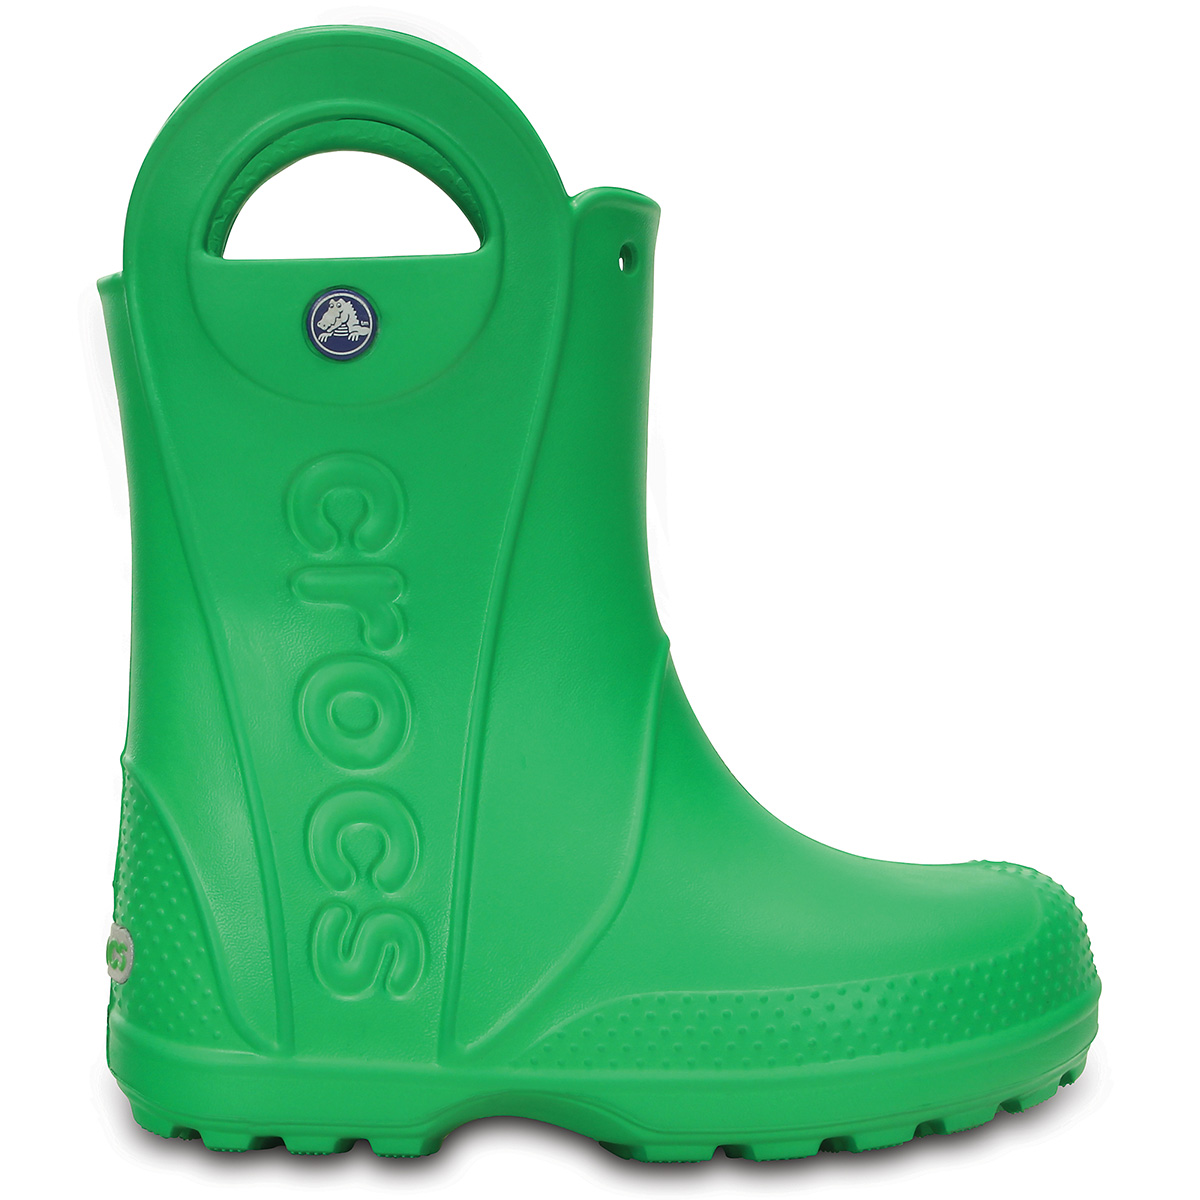 Handle It Rain Boot Kids - Çim yeşili